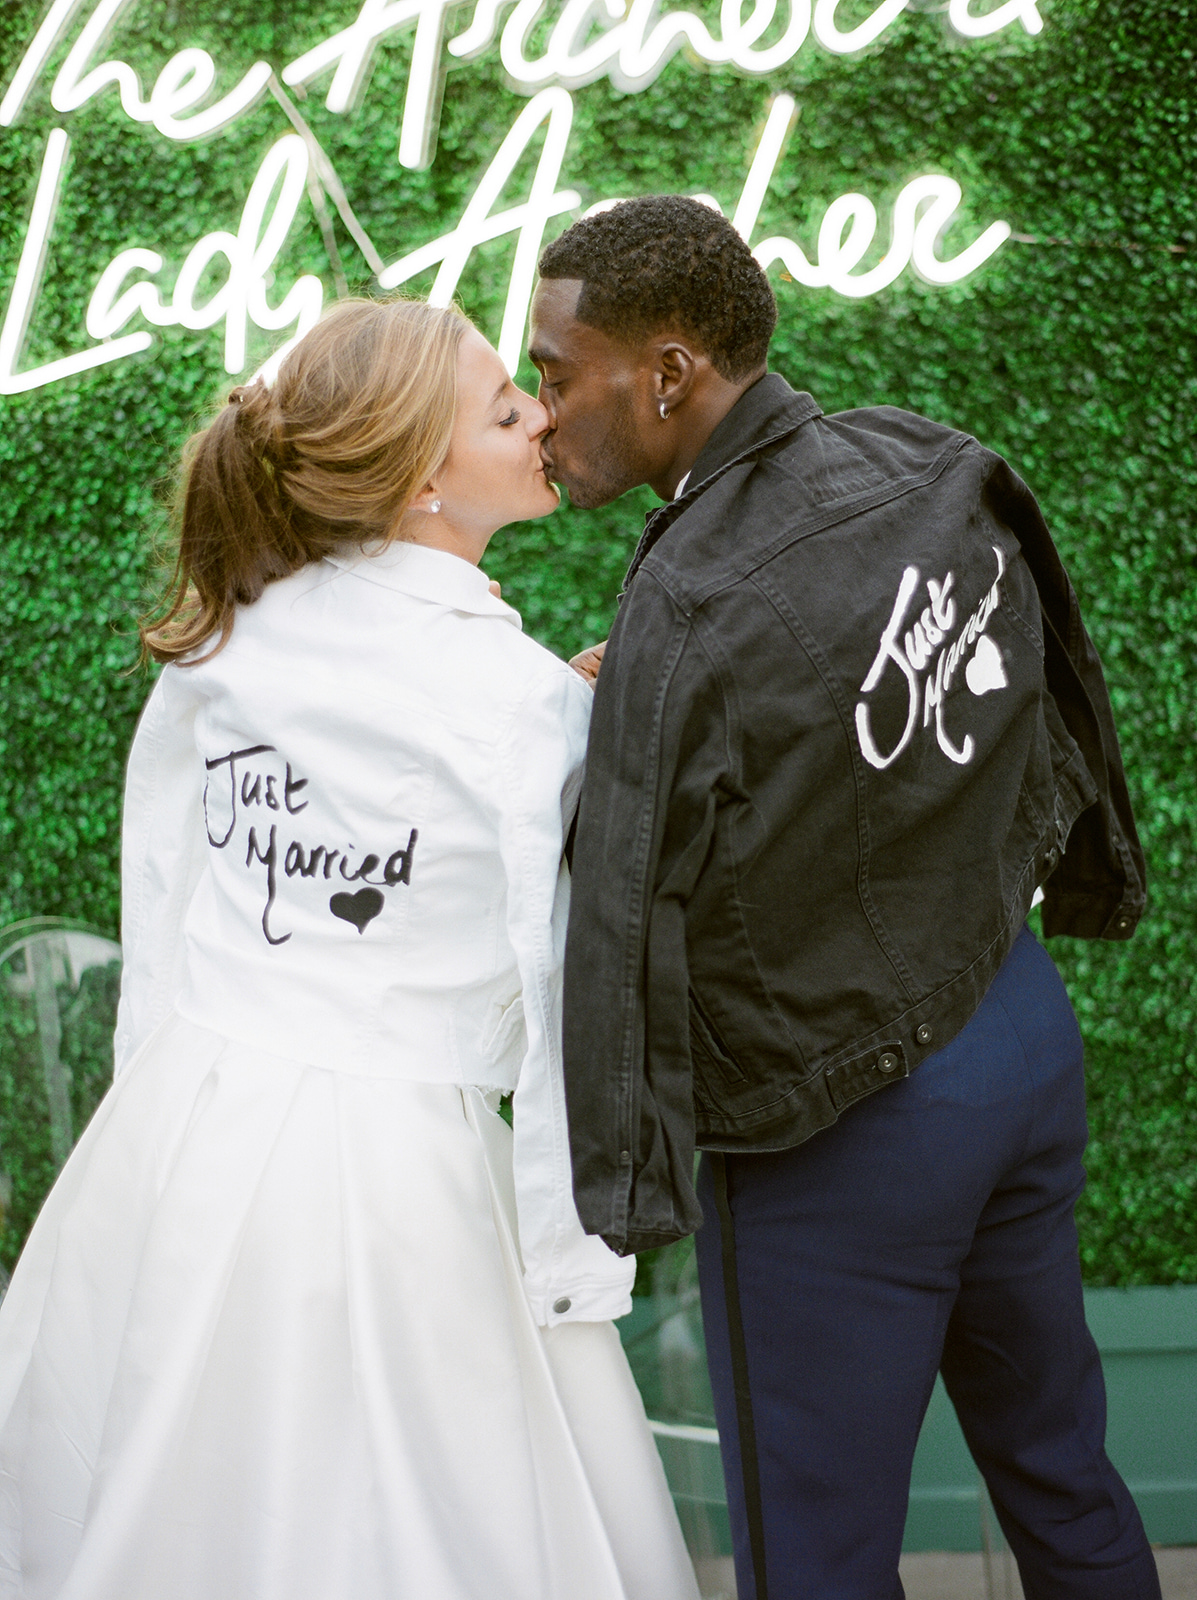 LA Rams NFL football player Brandin Cooks with wife in custom jackets after wedding